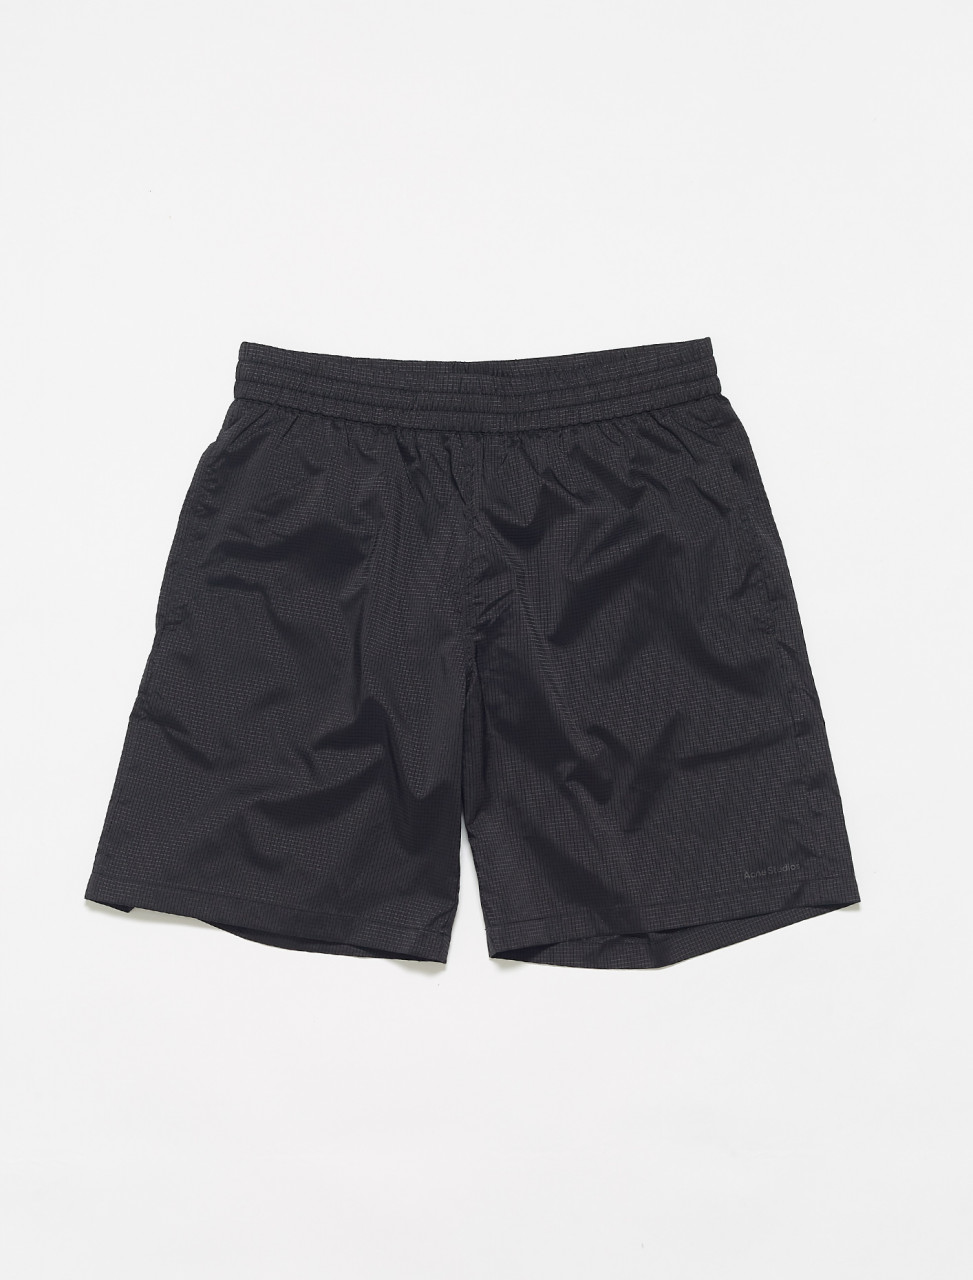 BJ0011-900 ACNE STUDIOS WOUNDA SWIMSHORTS IN BLACK